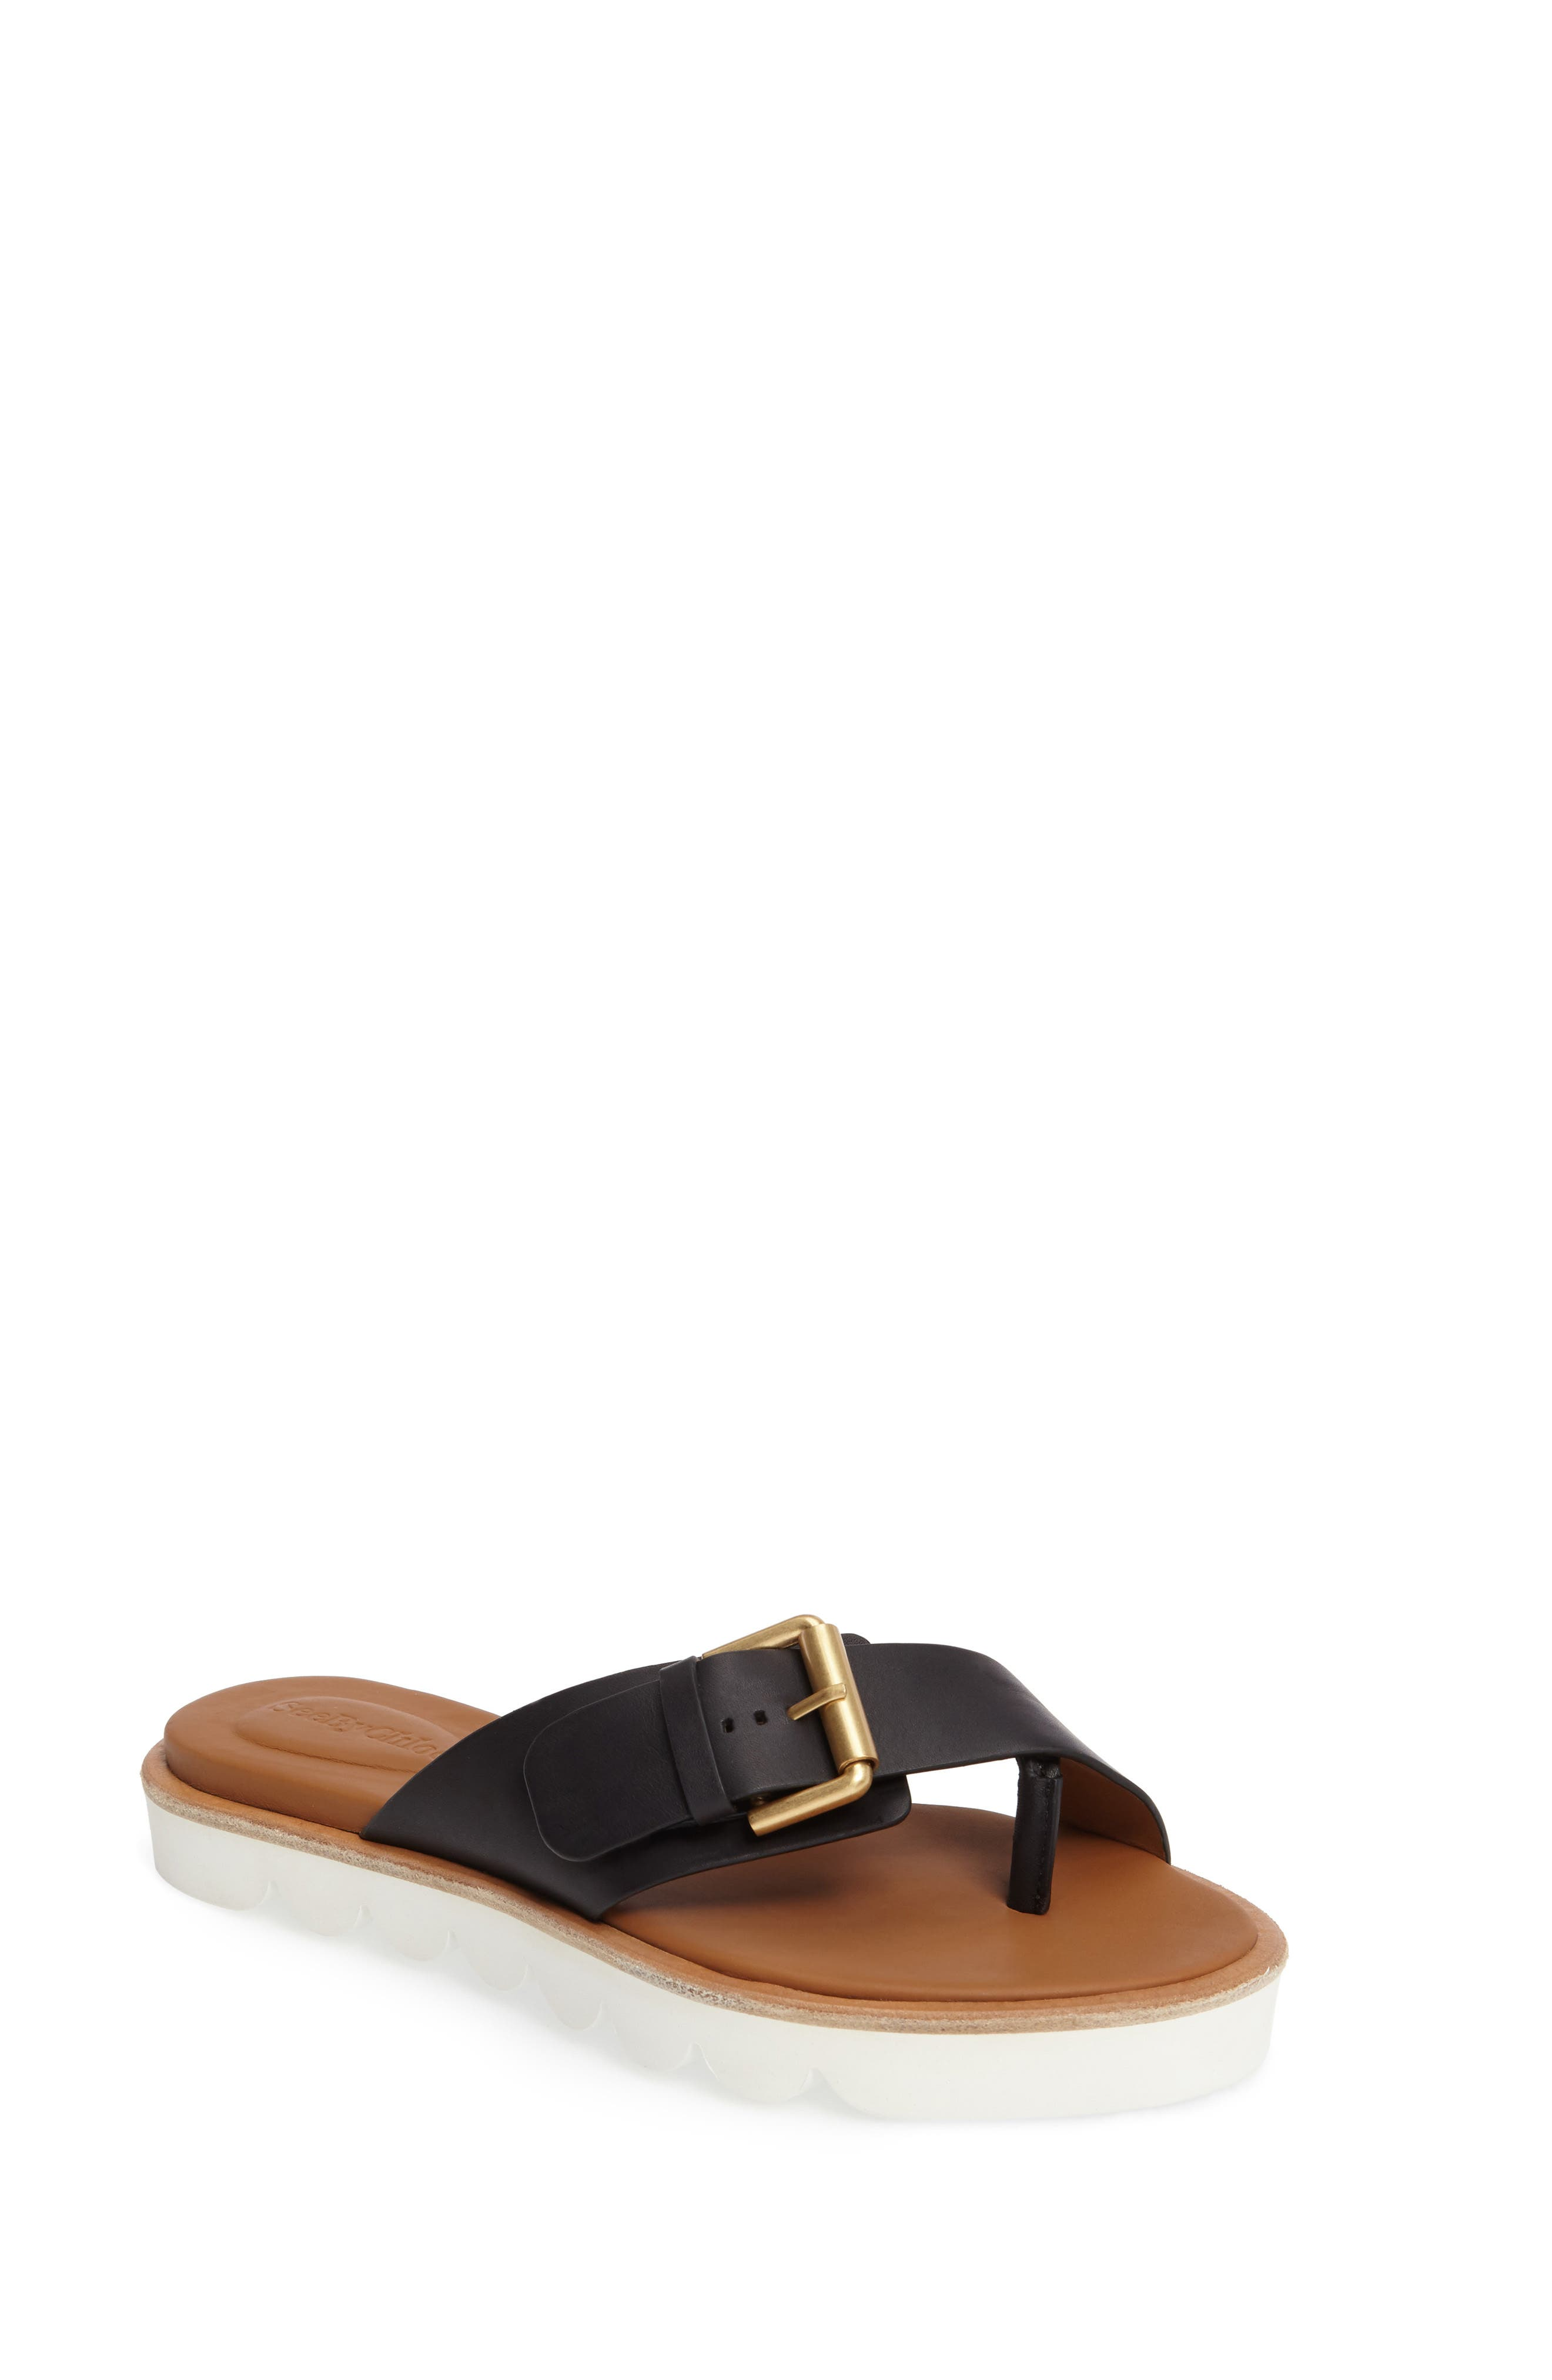 Main Image - See by Chloé Tiny Flip Flop (Women)